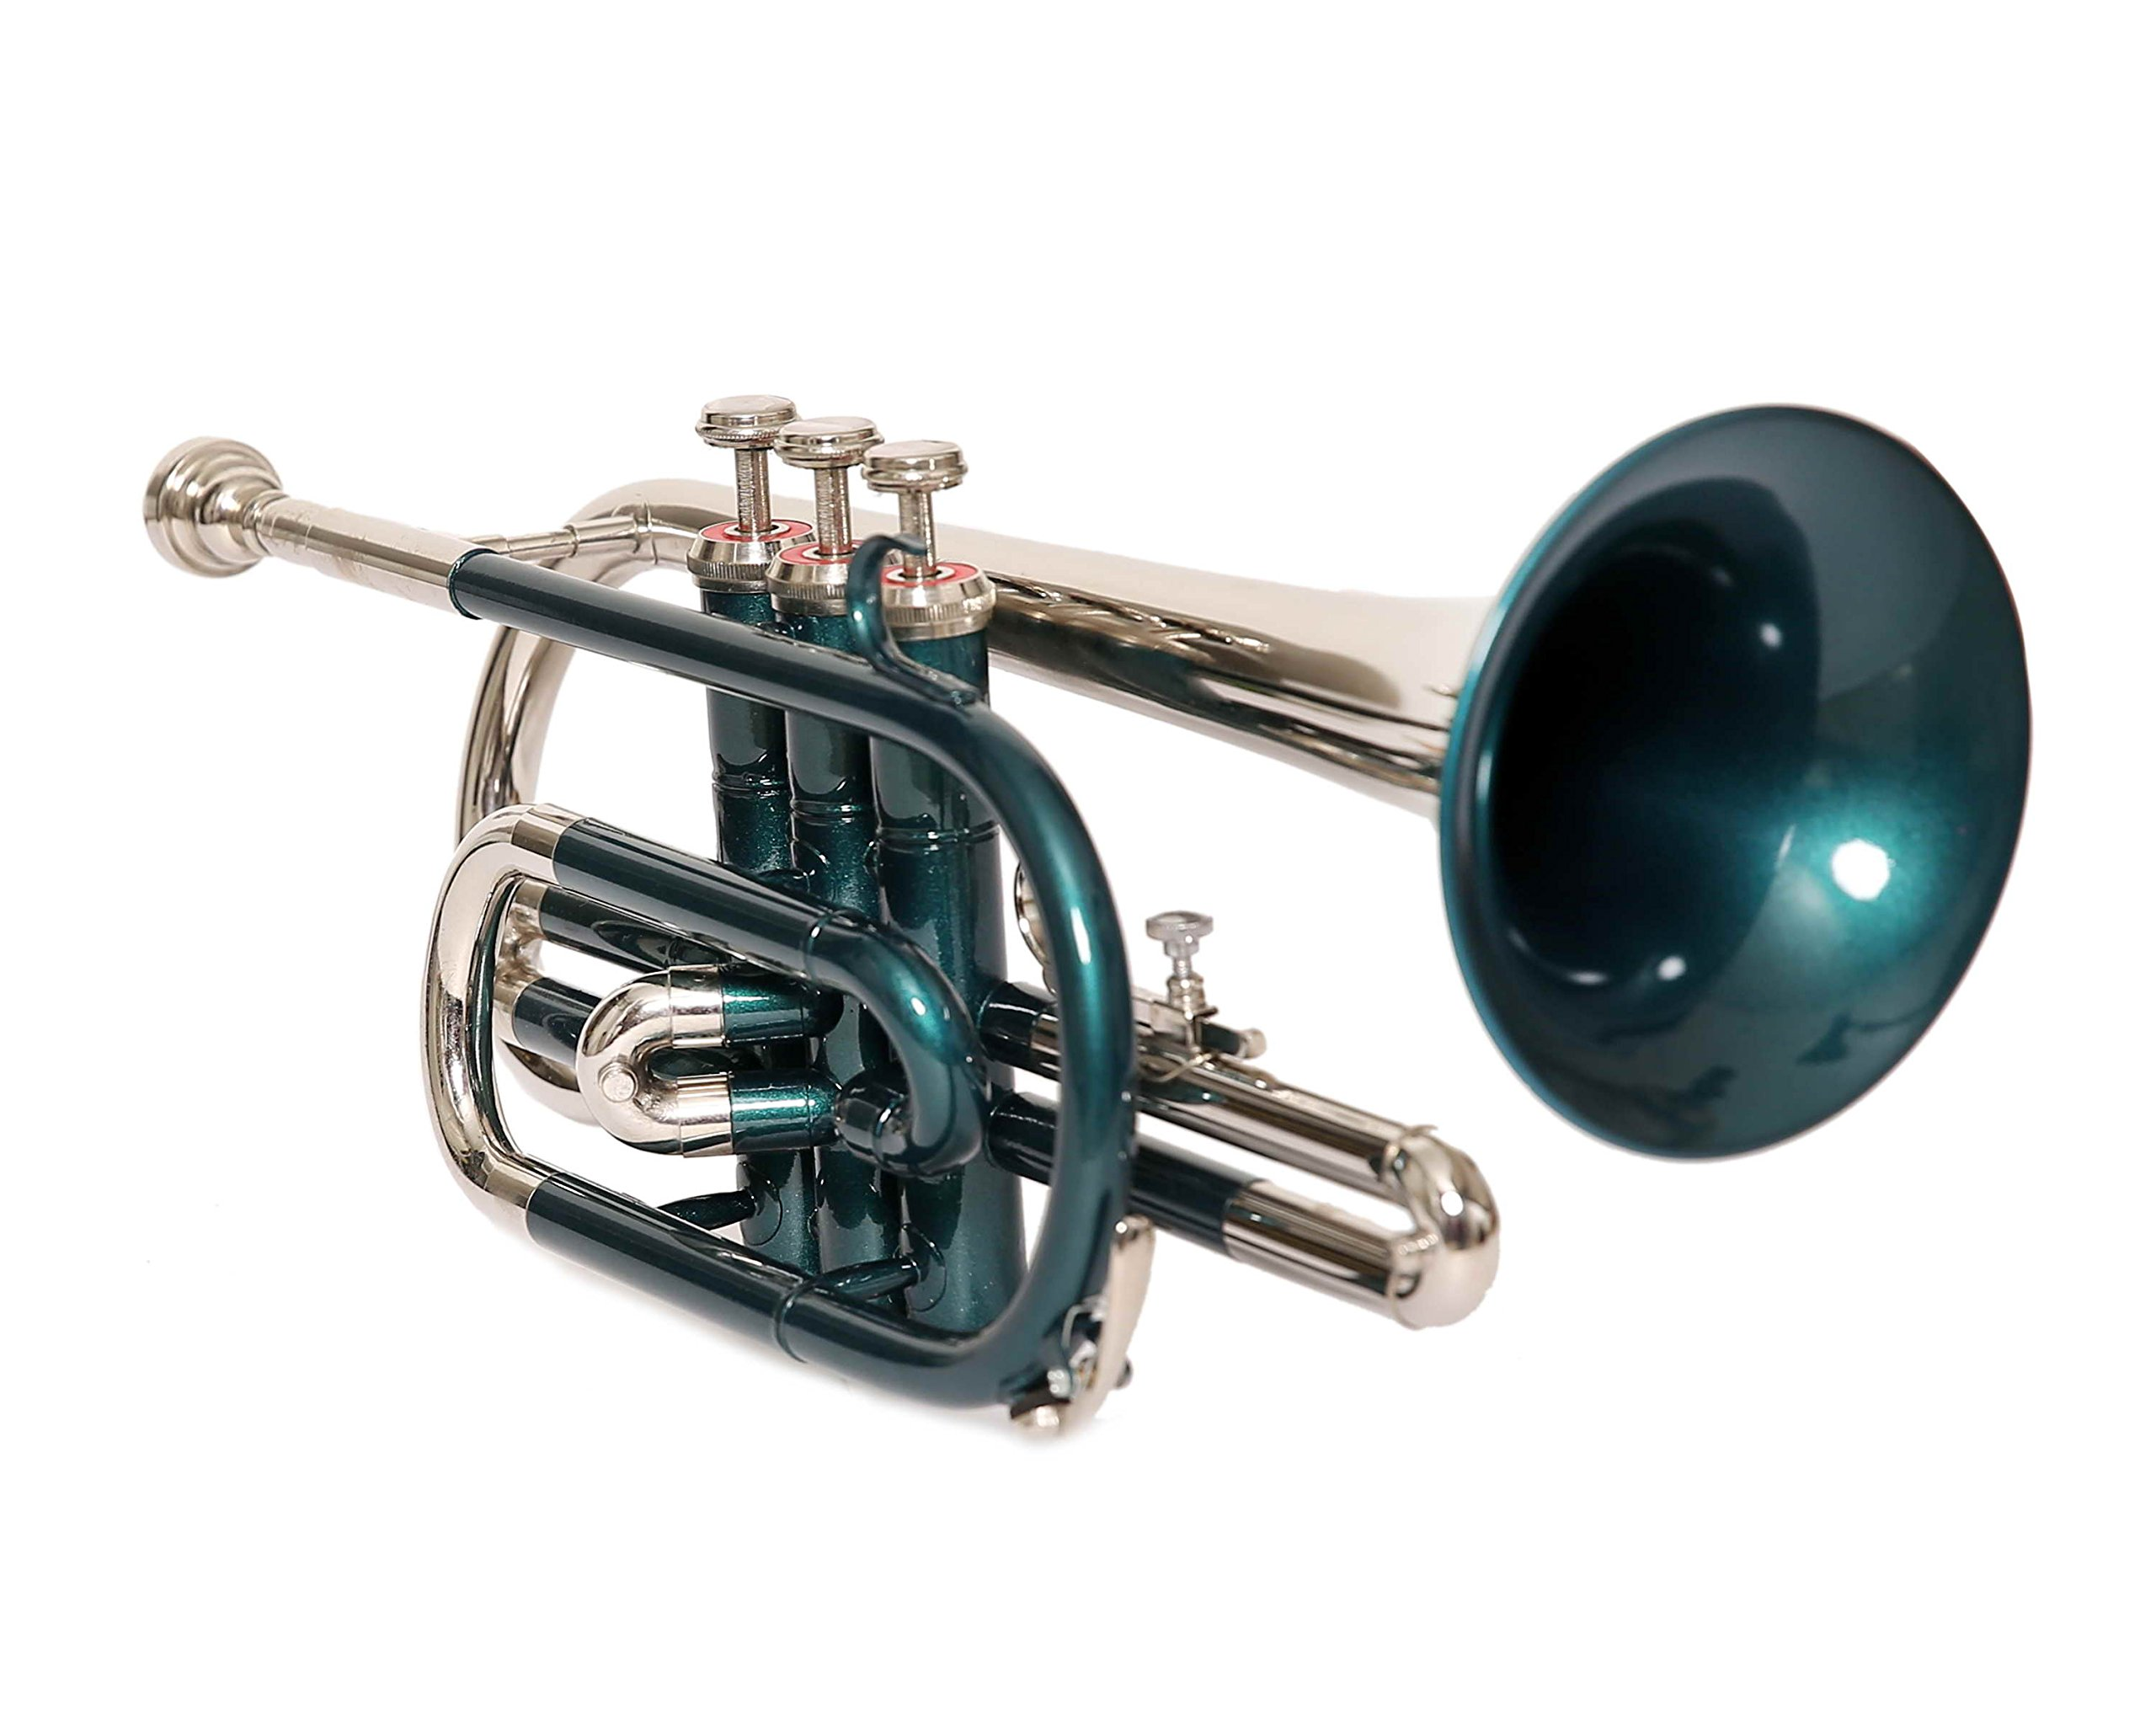 eMusicals Cornet Bb Pitch With Free Hard Case And Mouthpiece, Green Color+Nickel